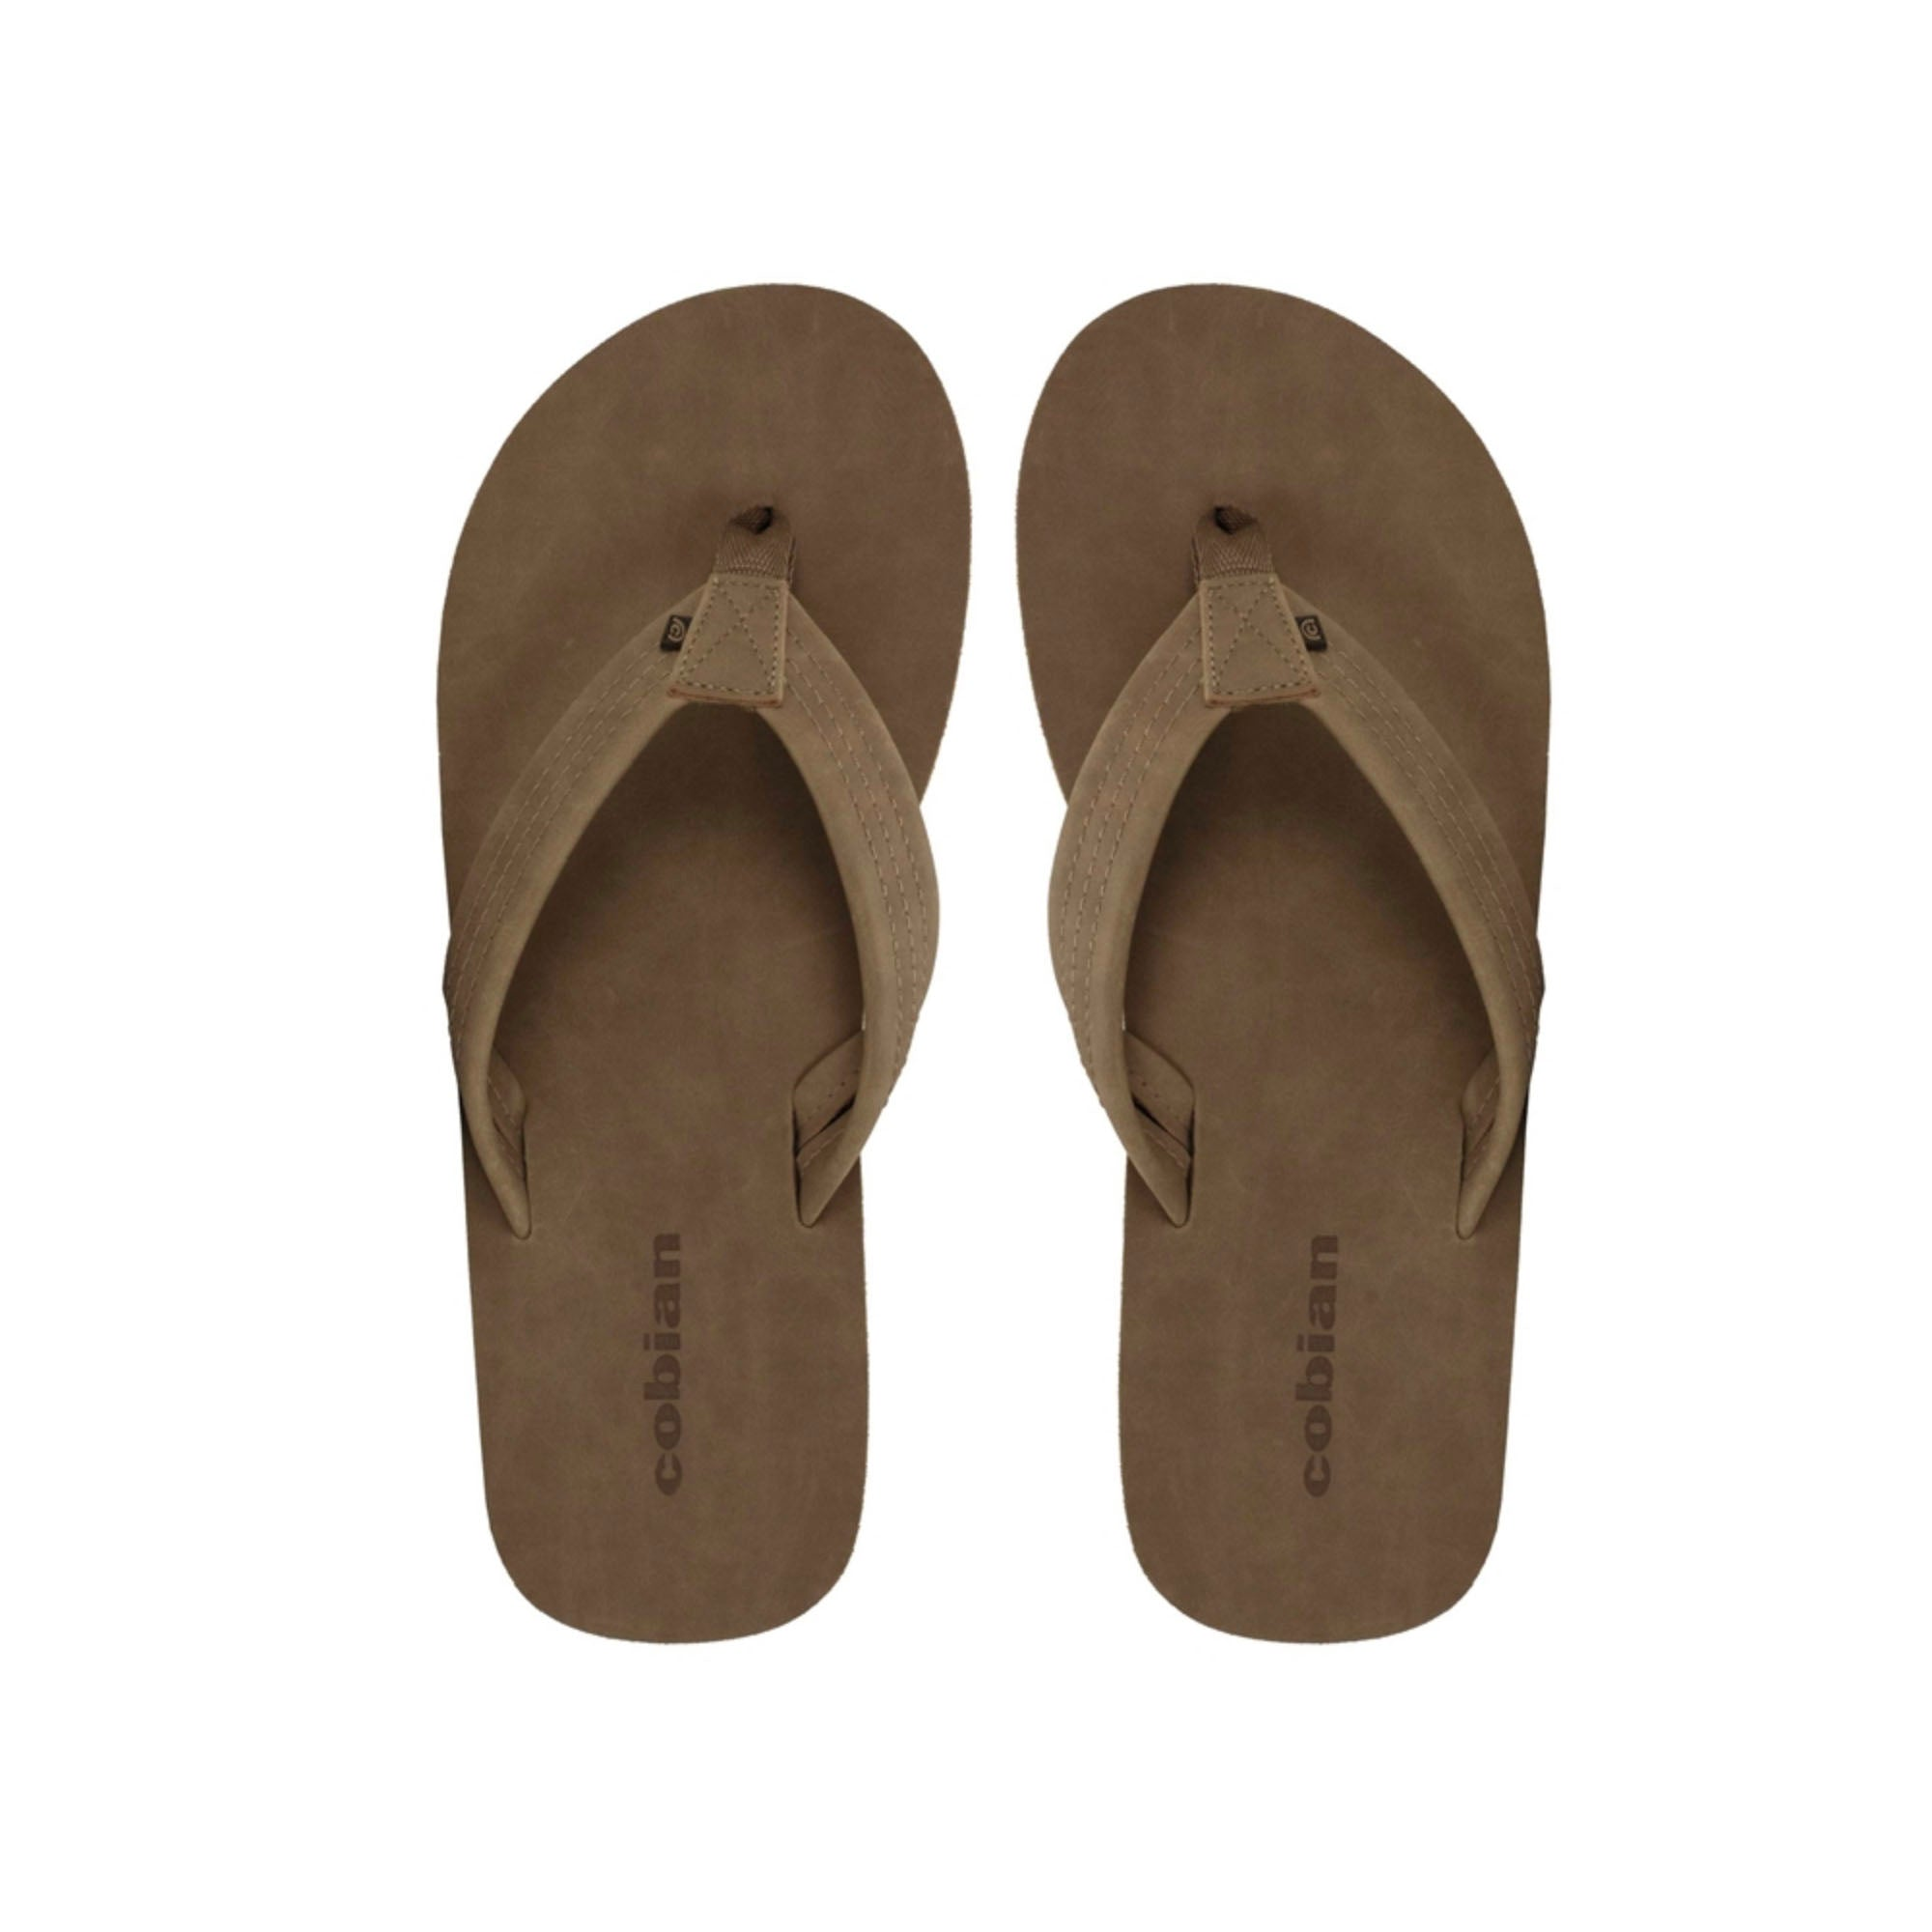 Cobian Las Olas Men's Sandals